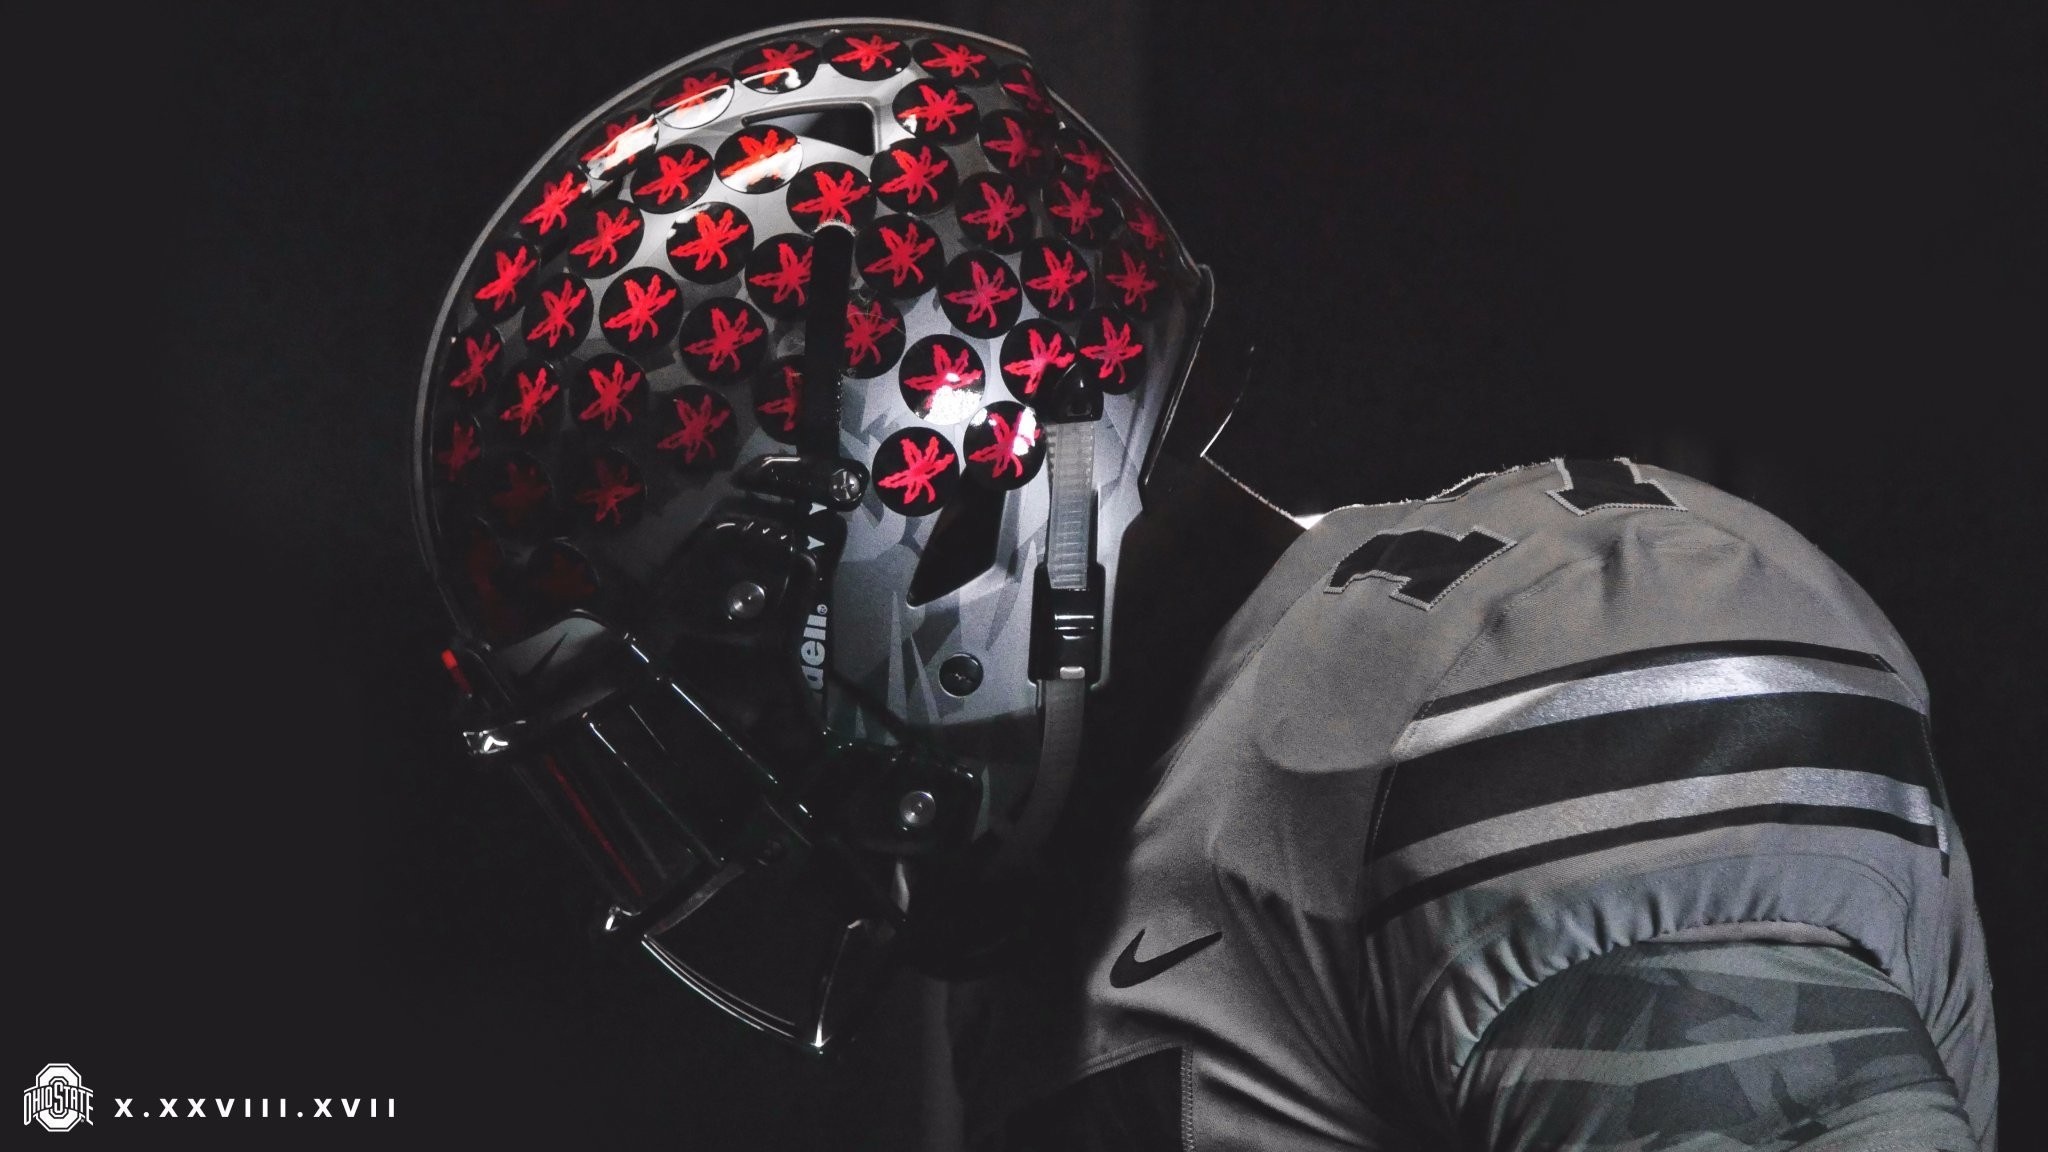 See Detailed Look At Ohio State S Alternate Uniforms Vs Penn State Buckeyes Football News Cleveland Com